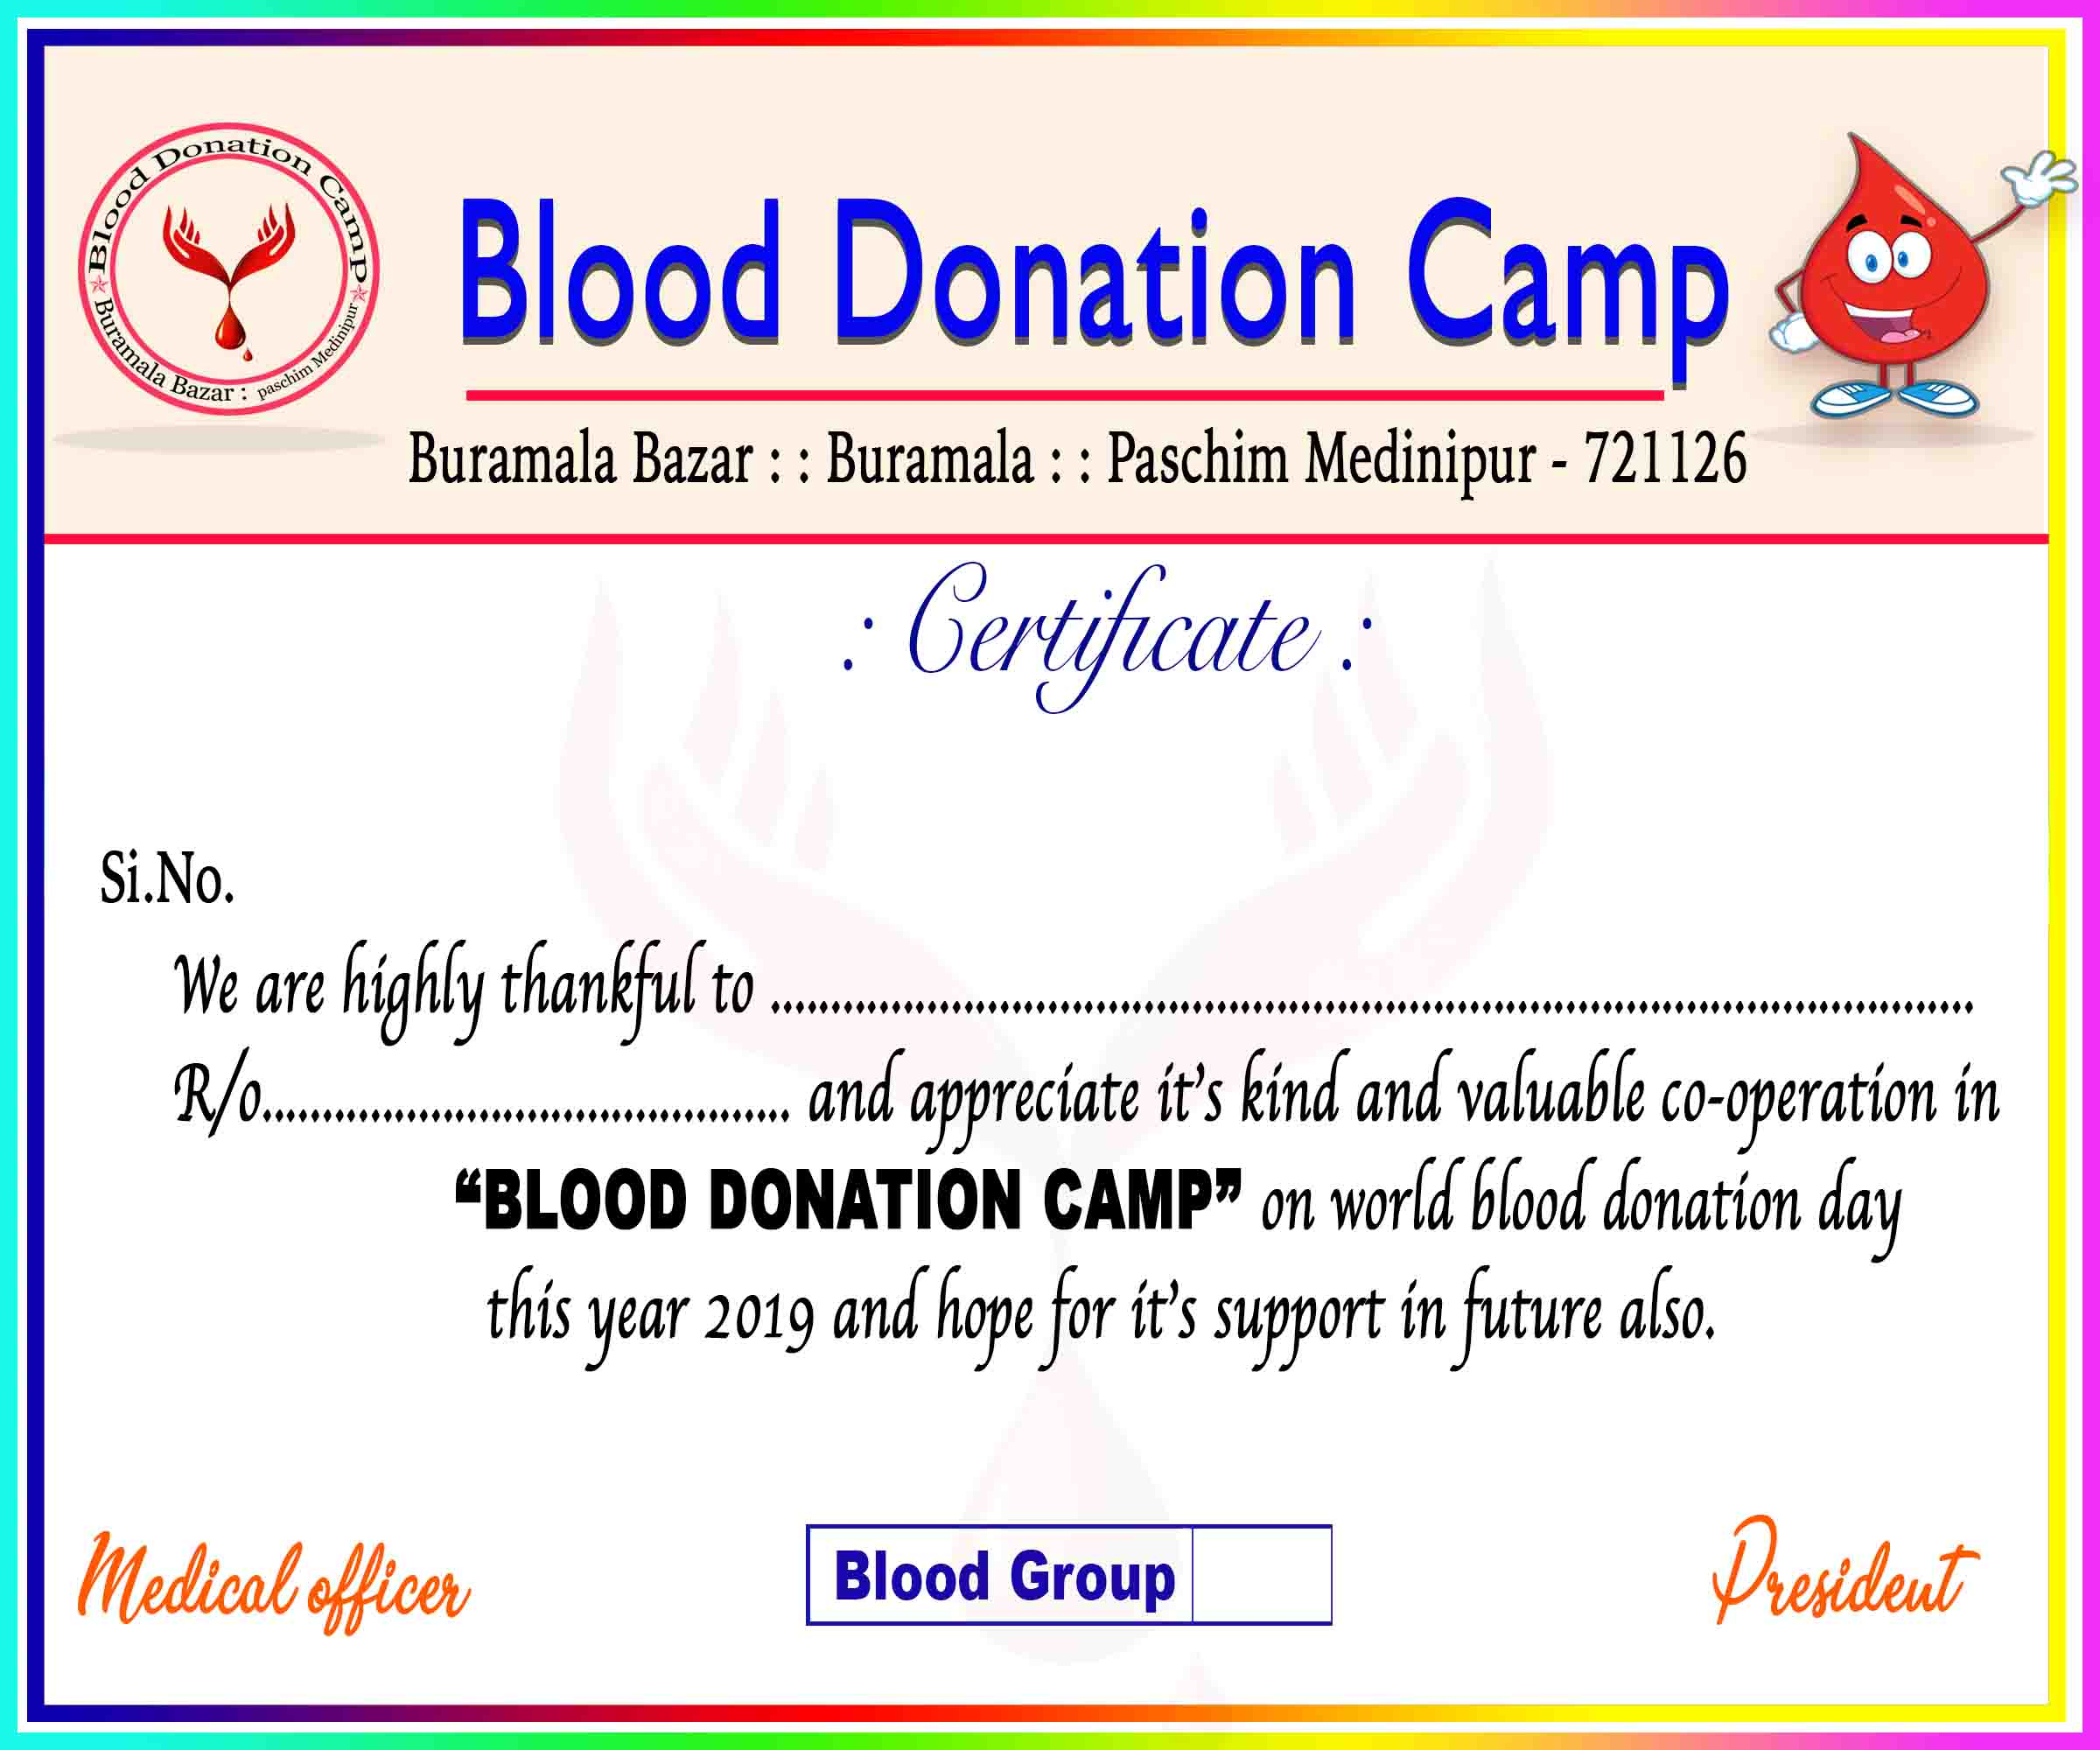 Blood Donation Camp Certificate In Psd Format